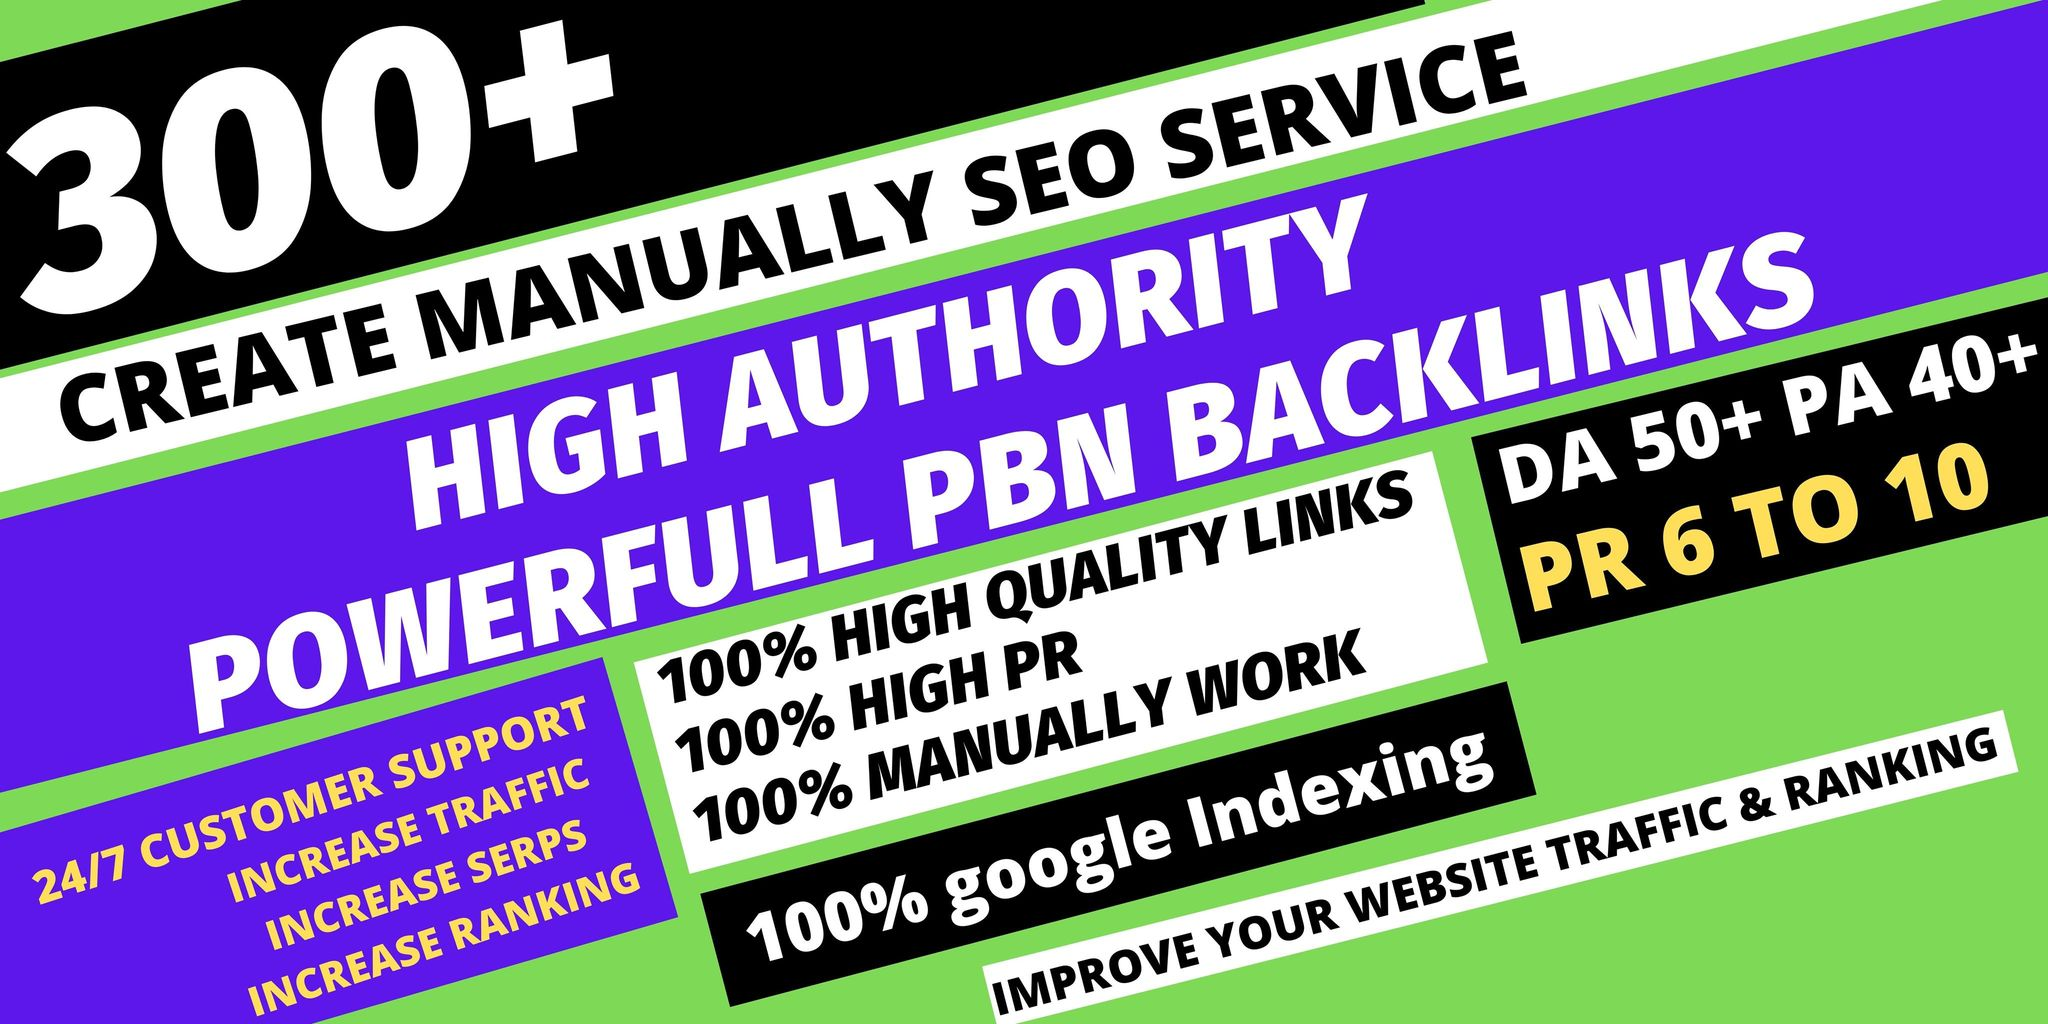 get permanent 300 Pbn Backlink DA50+PA40+PR6+homepage web 2.0 with dofollow unique site